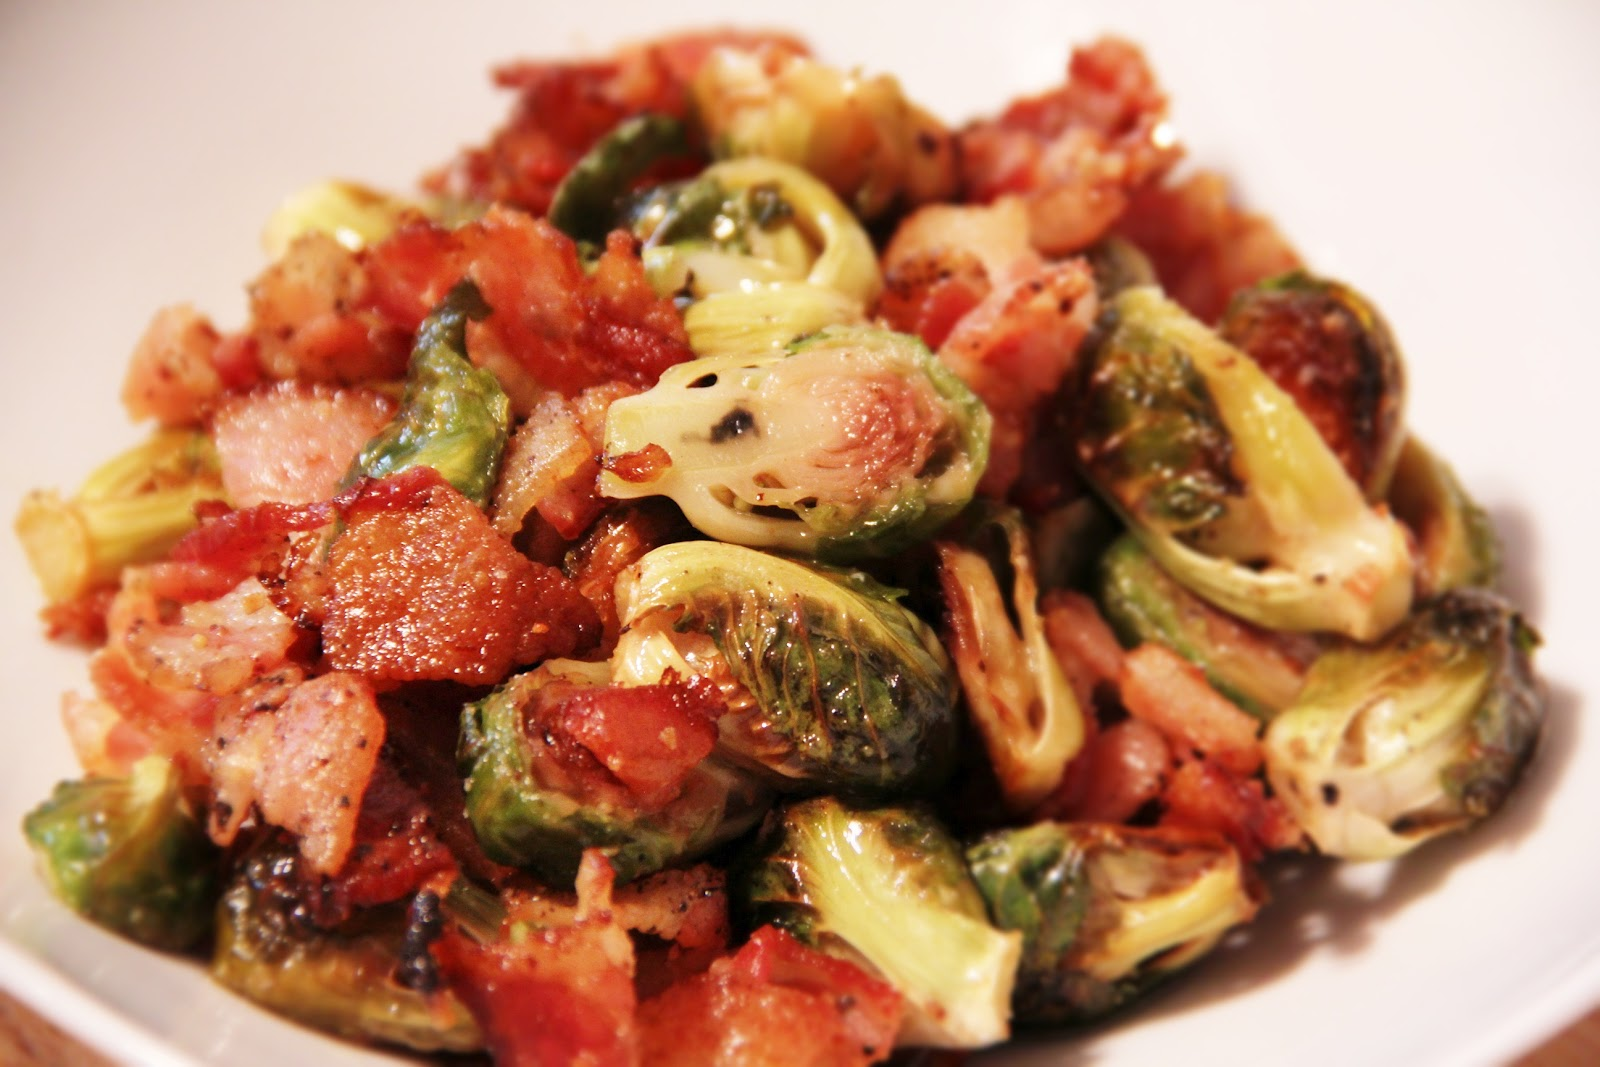 Brooklyn Salt : Roasted Brussel Sprouts and Bacon